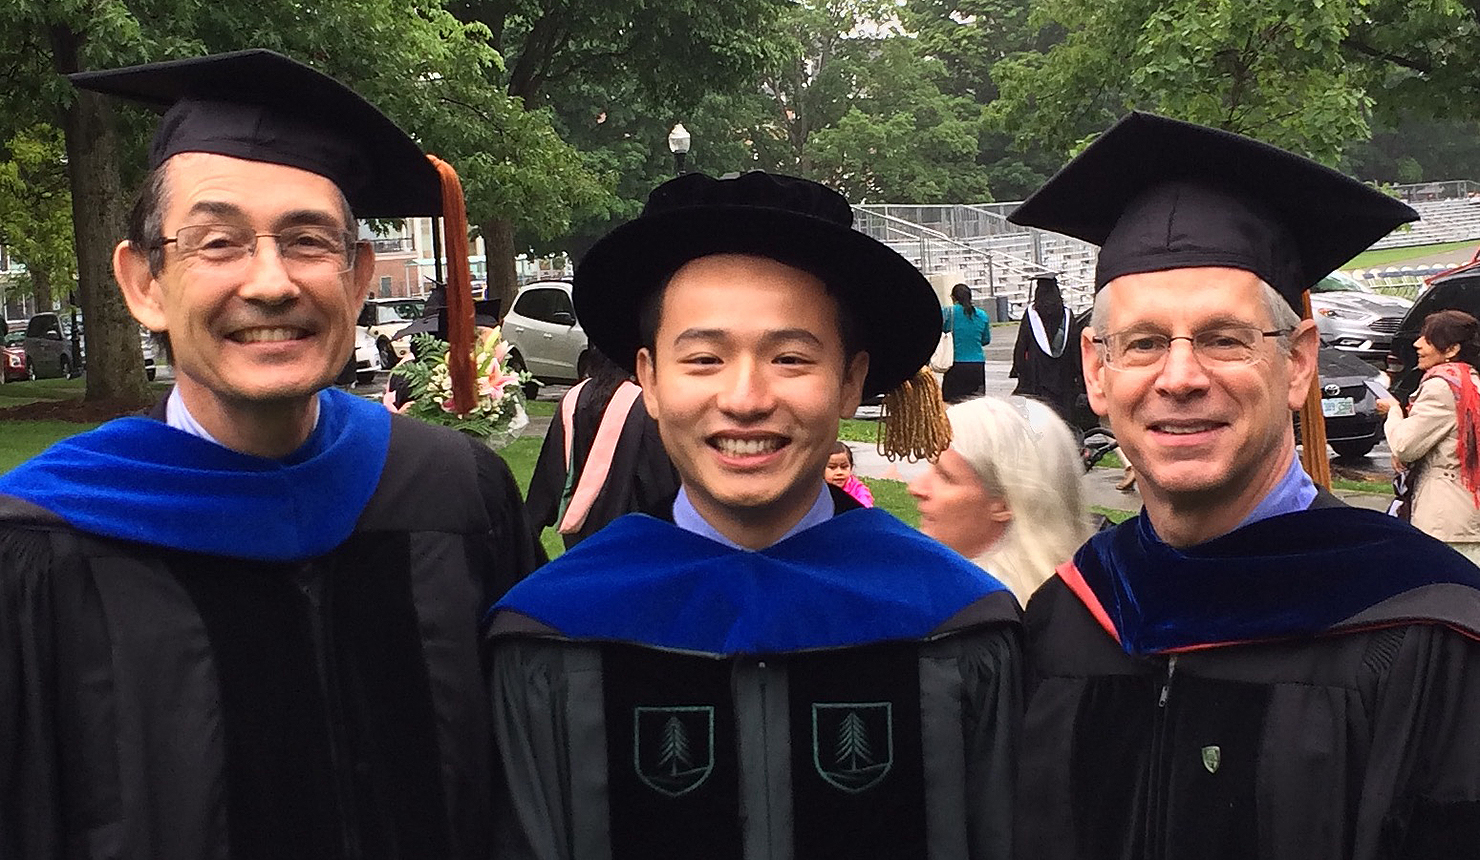 Chris Amos (left), David Qian, and Interim Dean Duane Compton at the Graduate Investiture Ceremony.